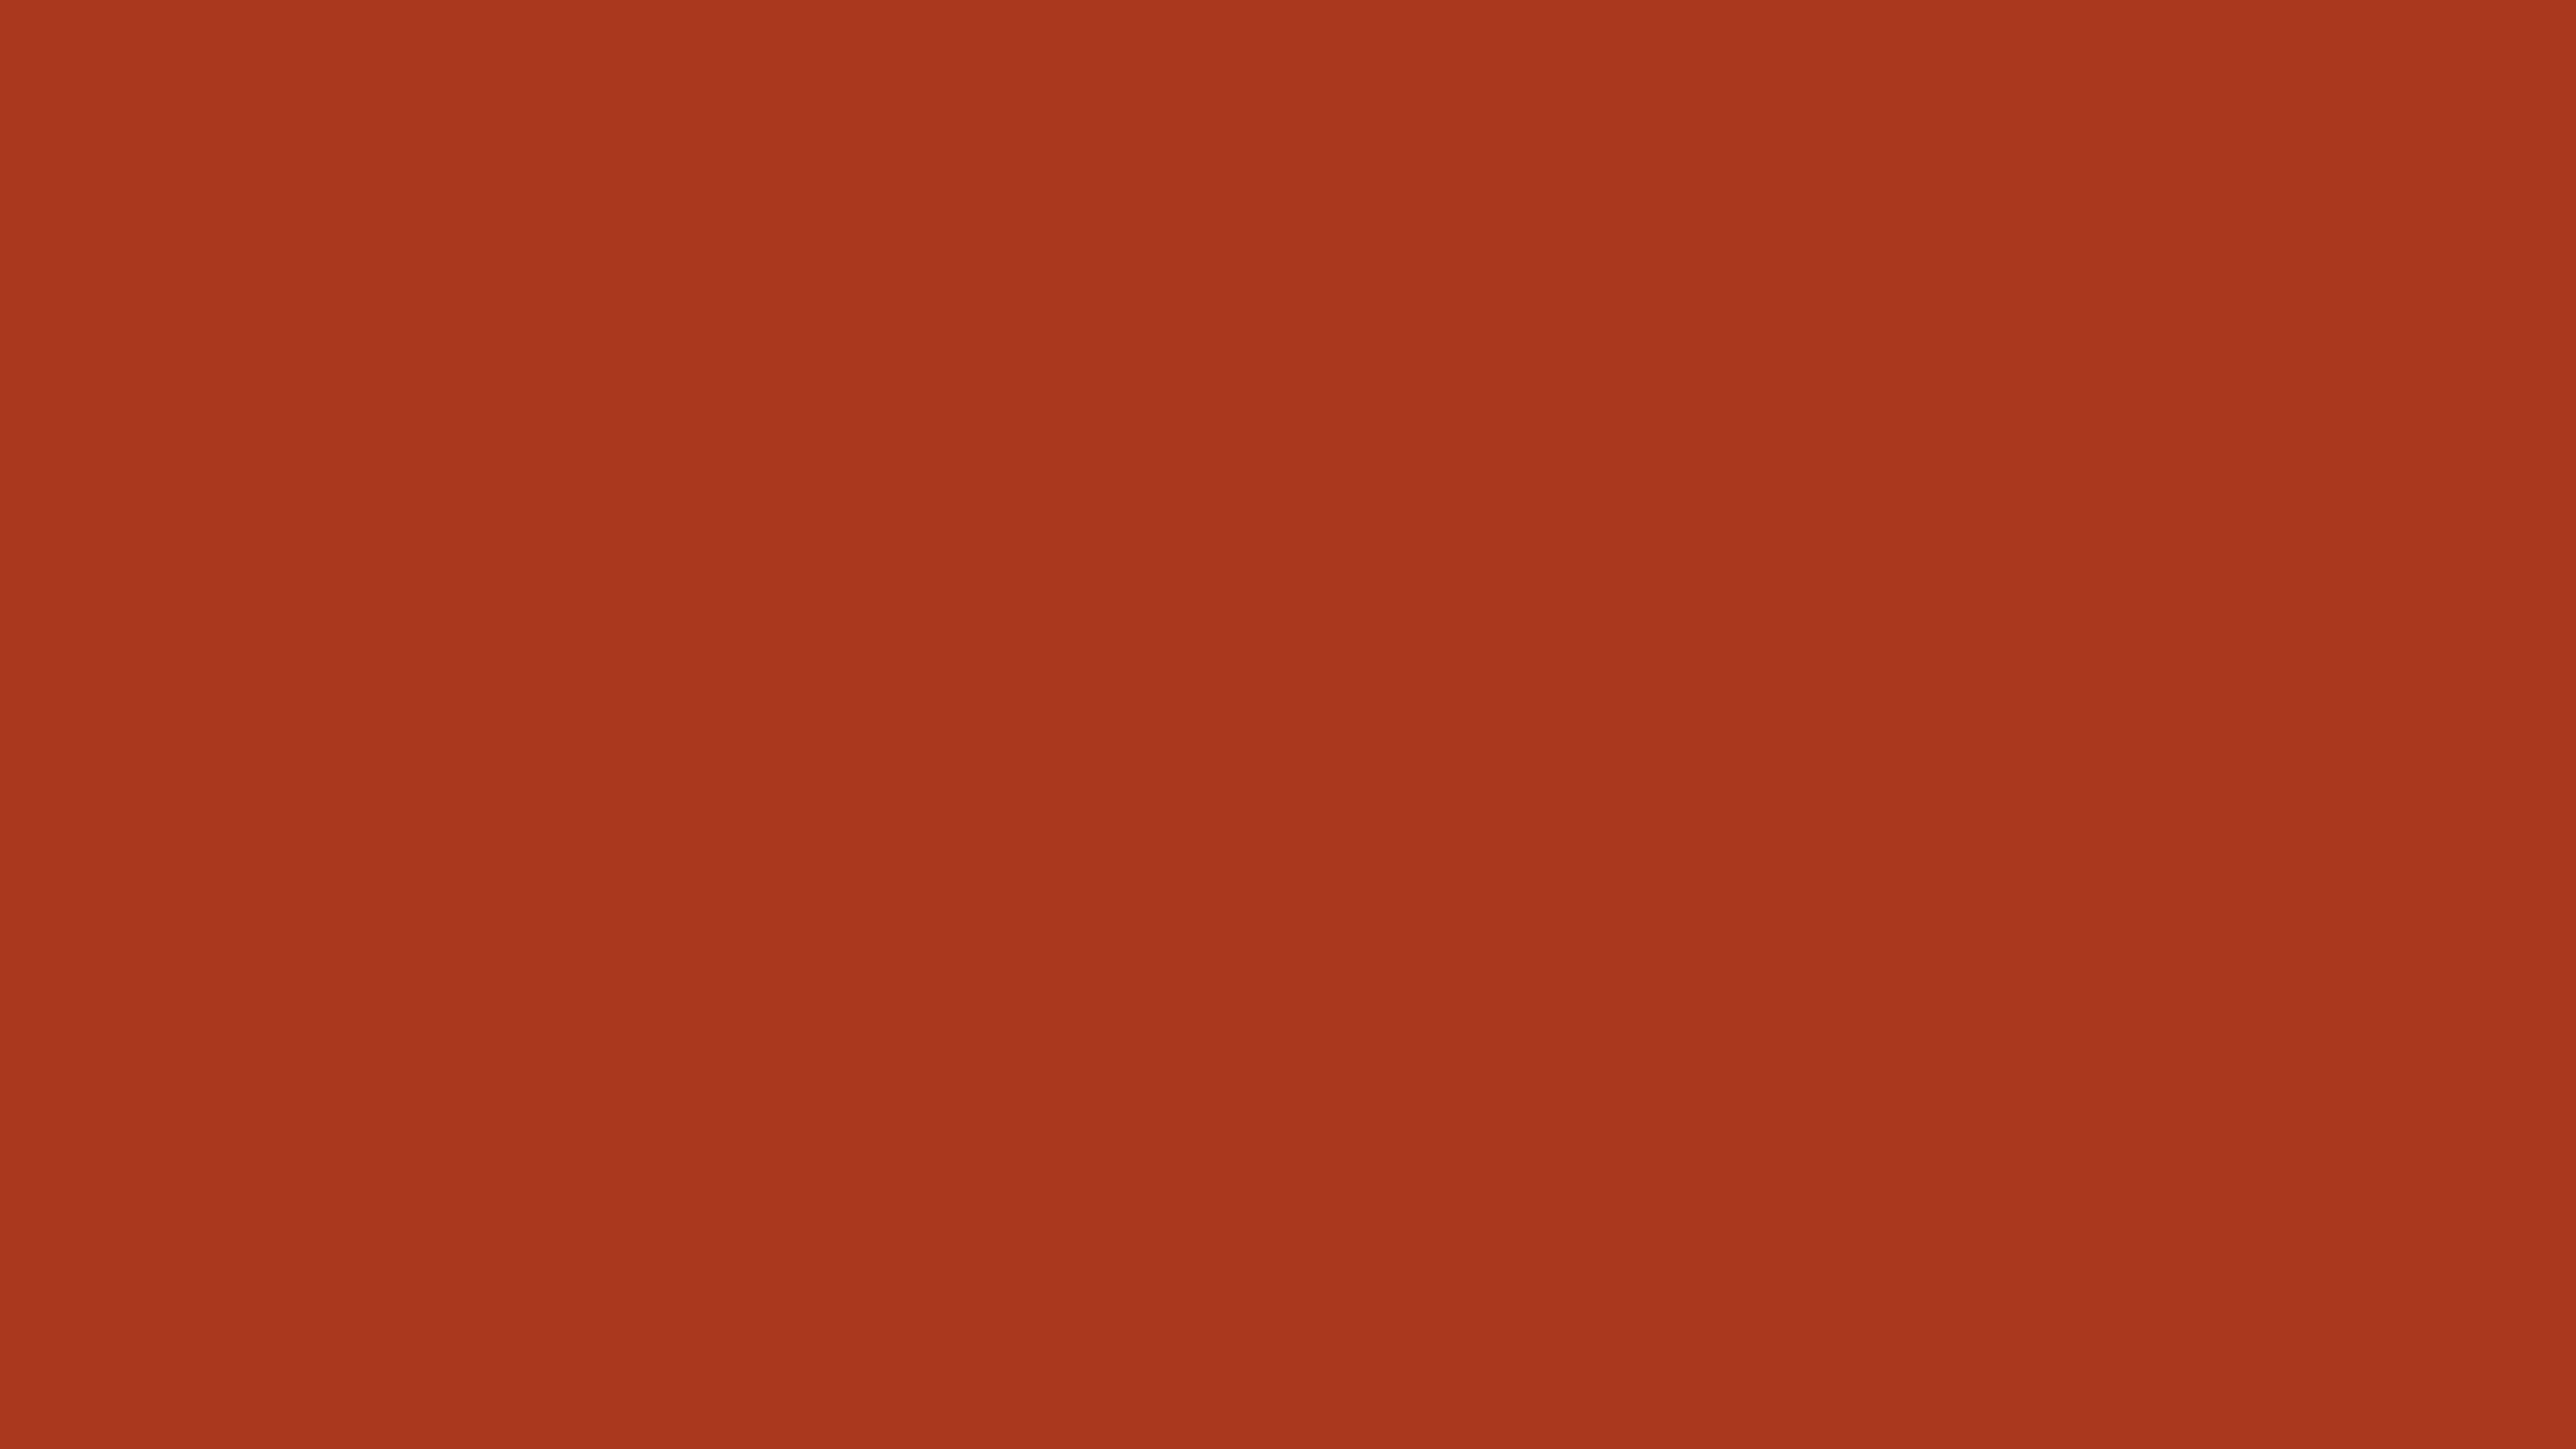 7680x4320 Chinese Red Solid Color Background